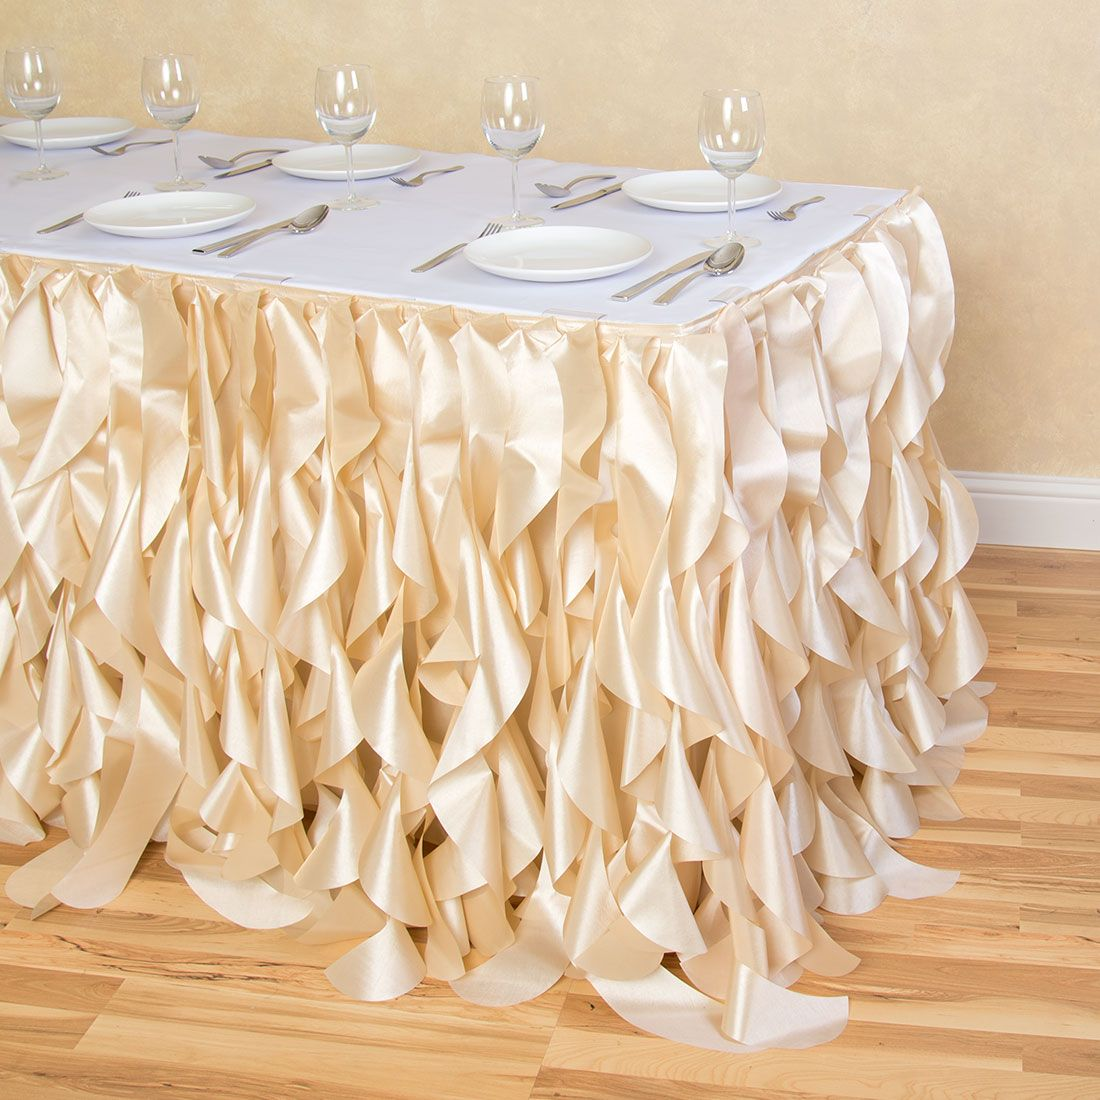 Shop for beige ruffled table skirts at LinenTablecloth. Curly Willow Table  Skirt Champagne features numerous curved ribbons, creating a graceful look  of ...